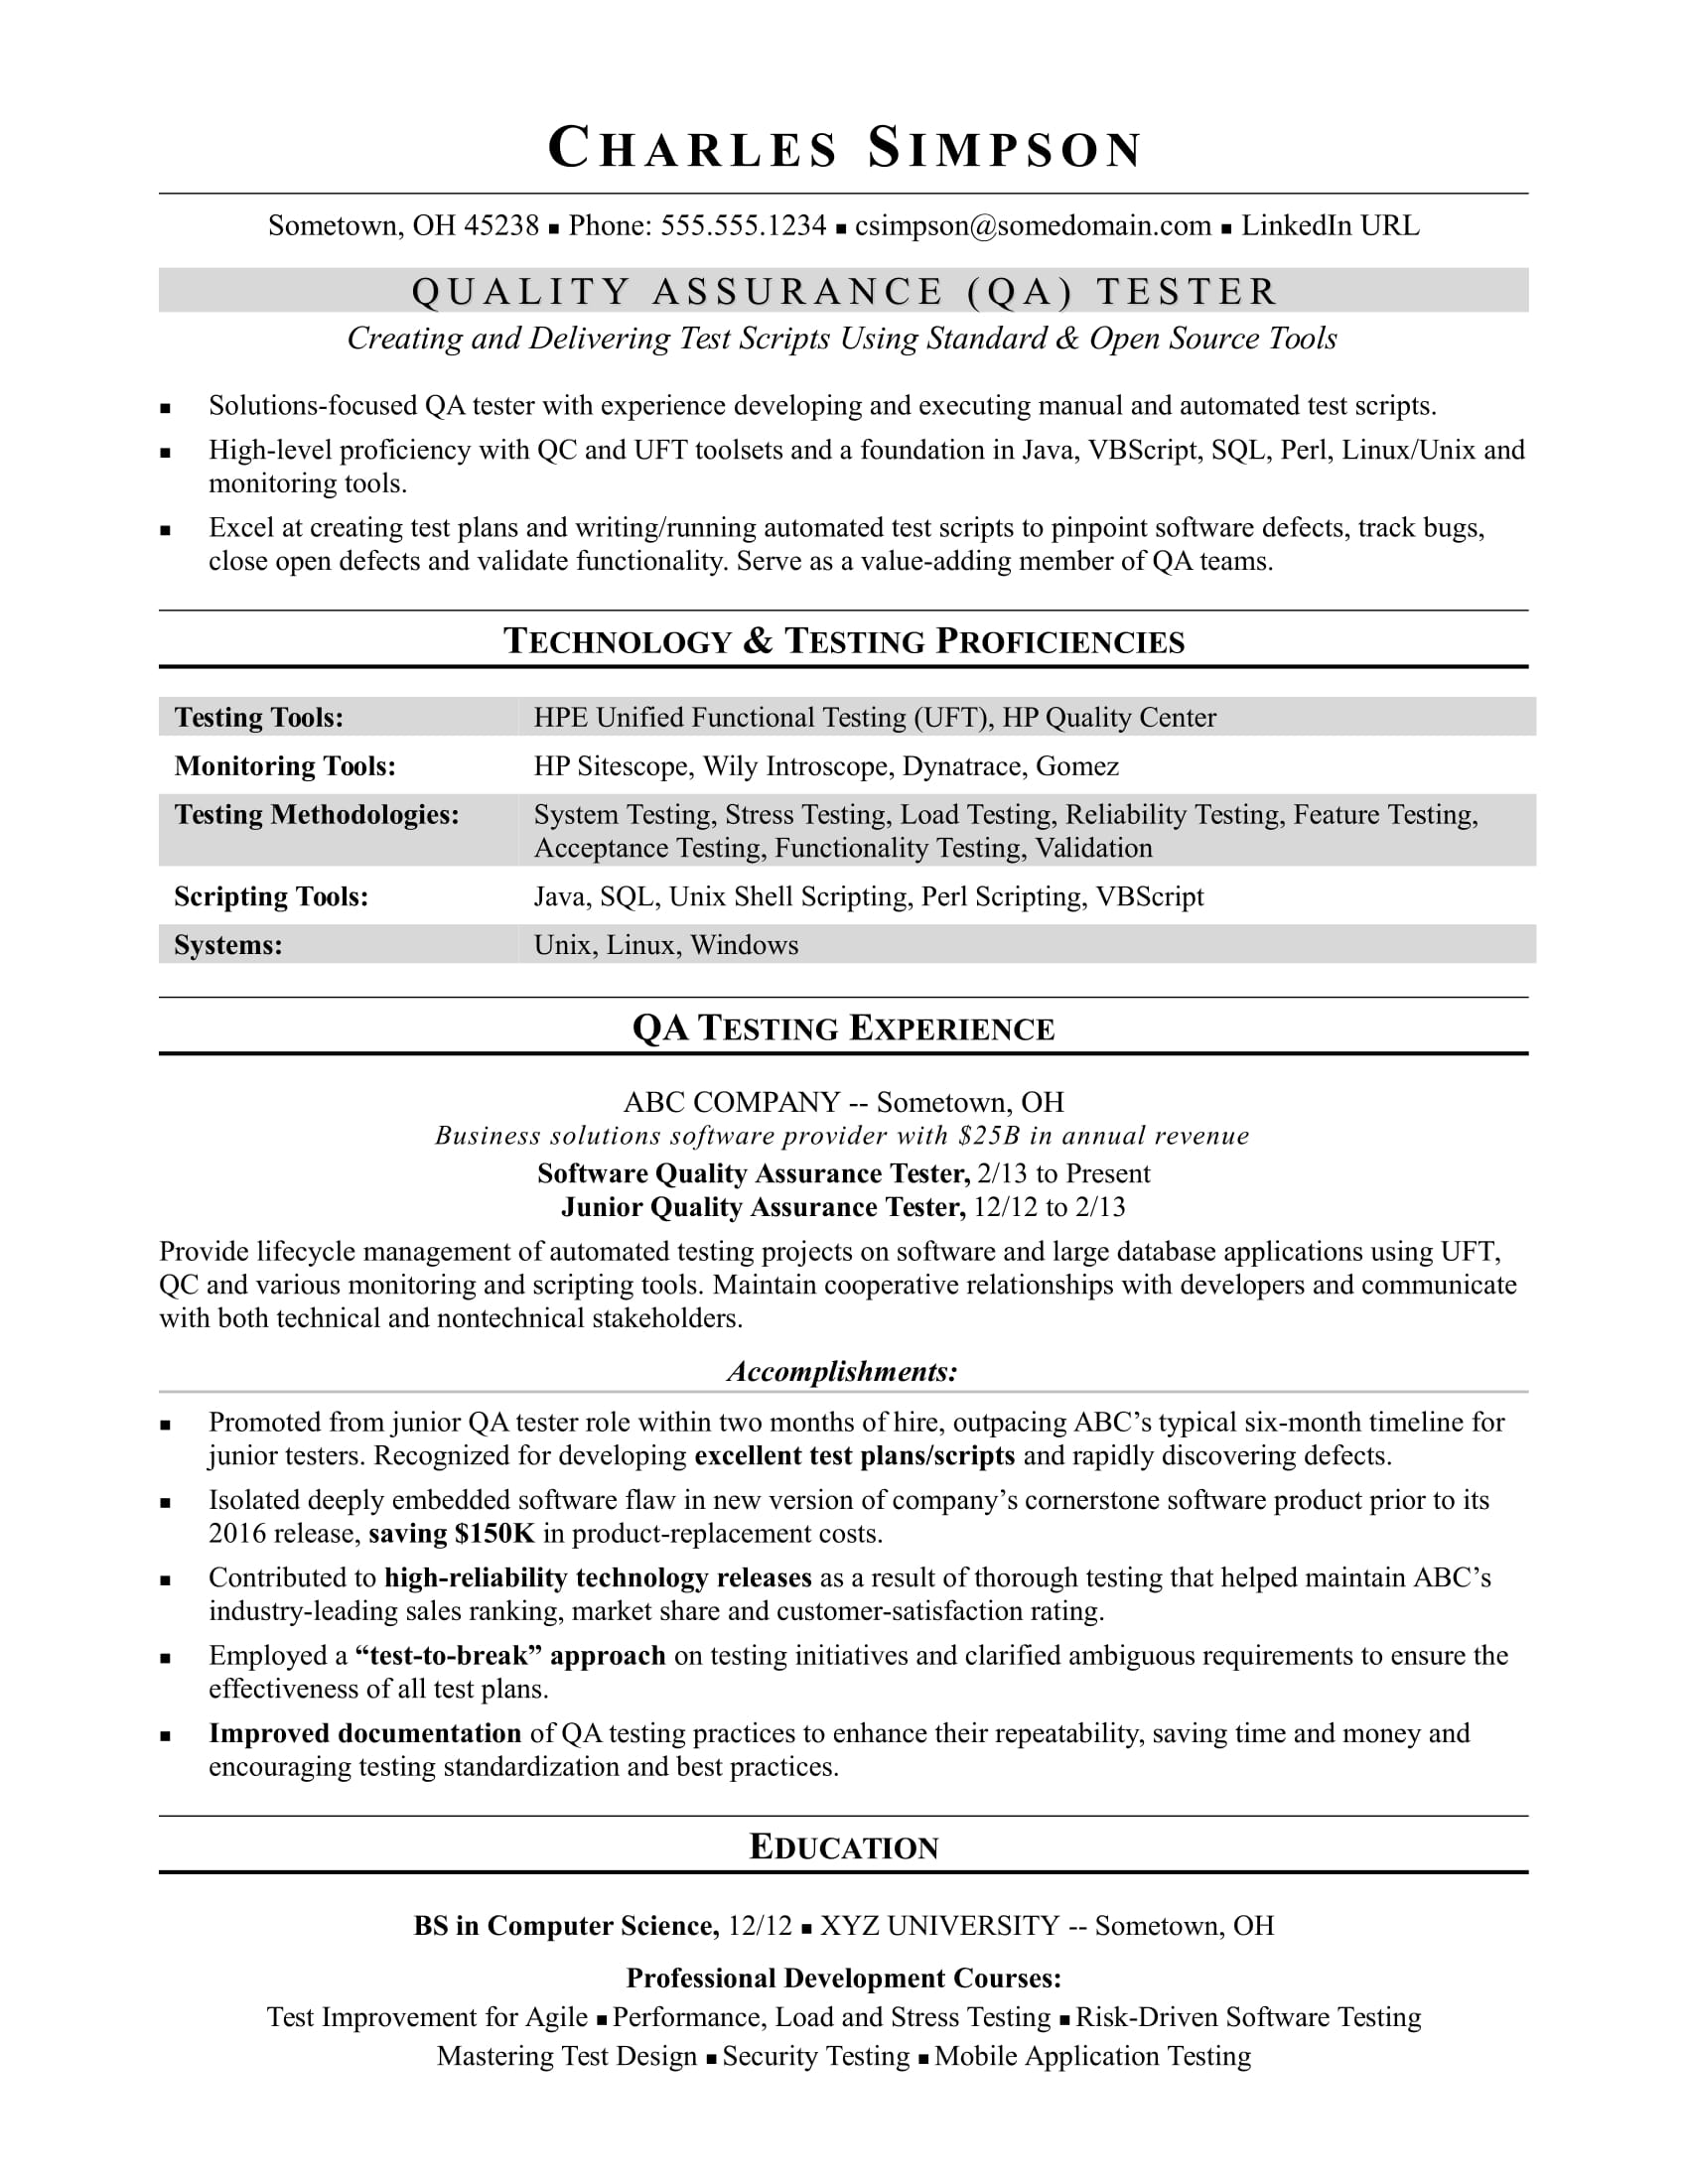 Sample Resume for a Midlevel QA Software Tester | Monster com